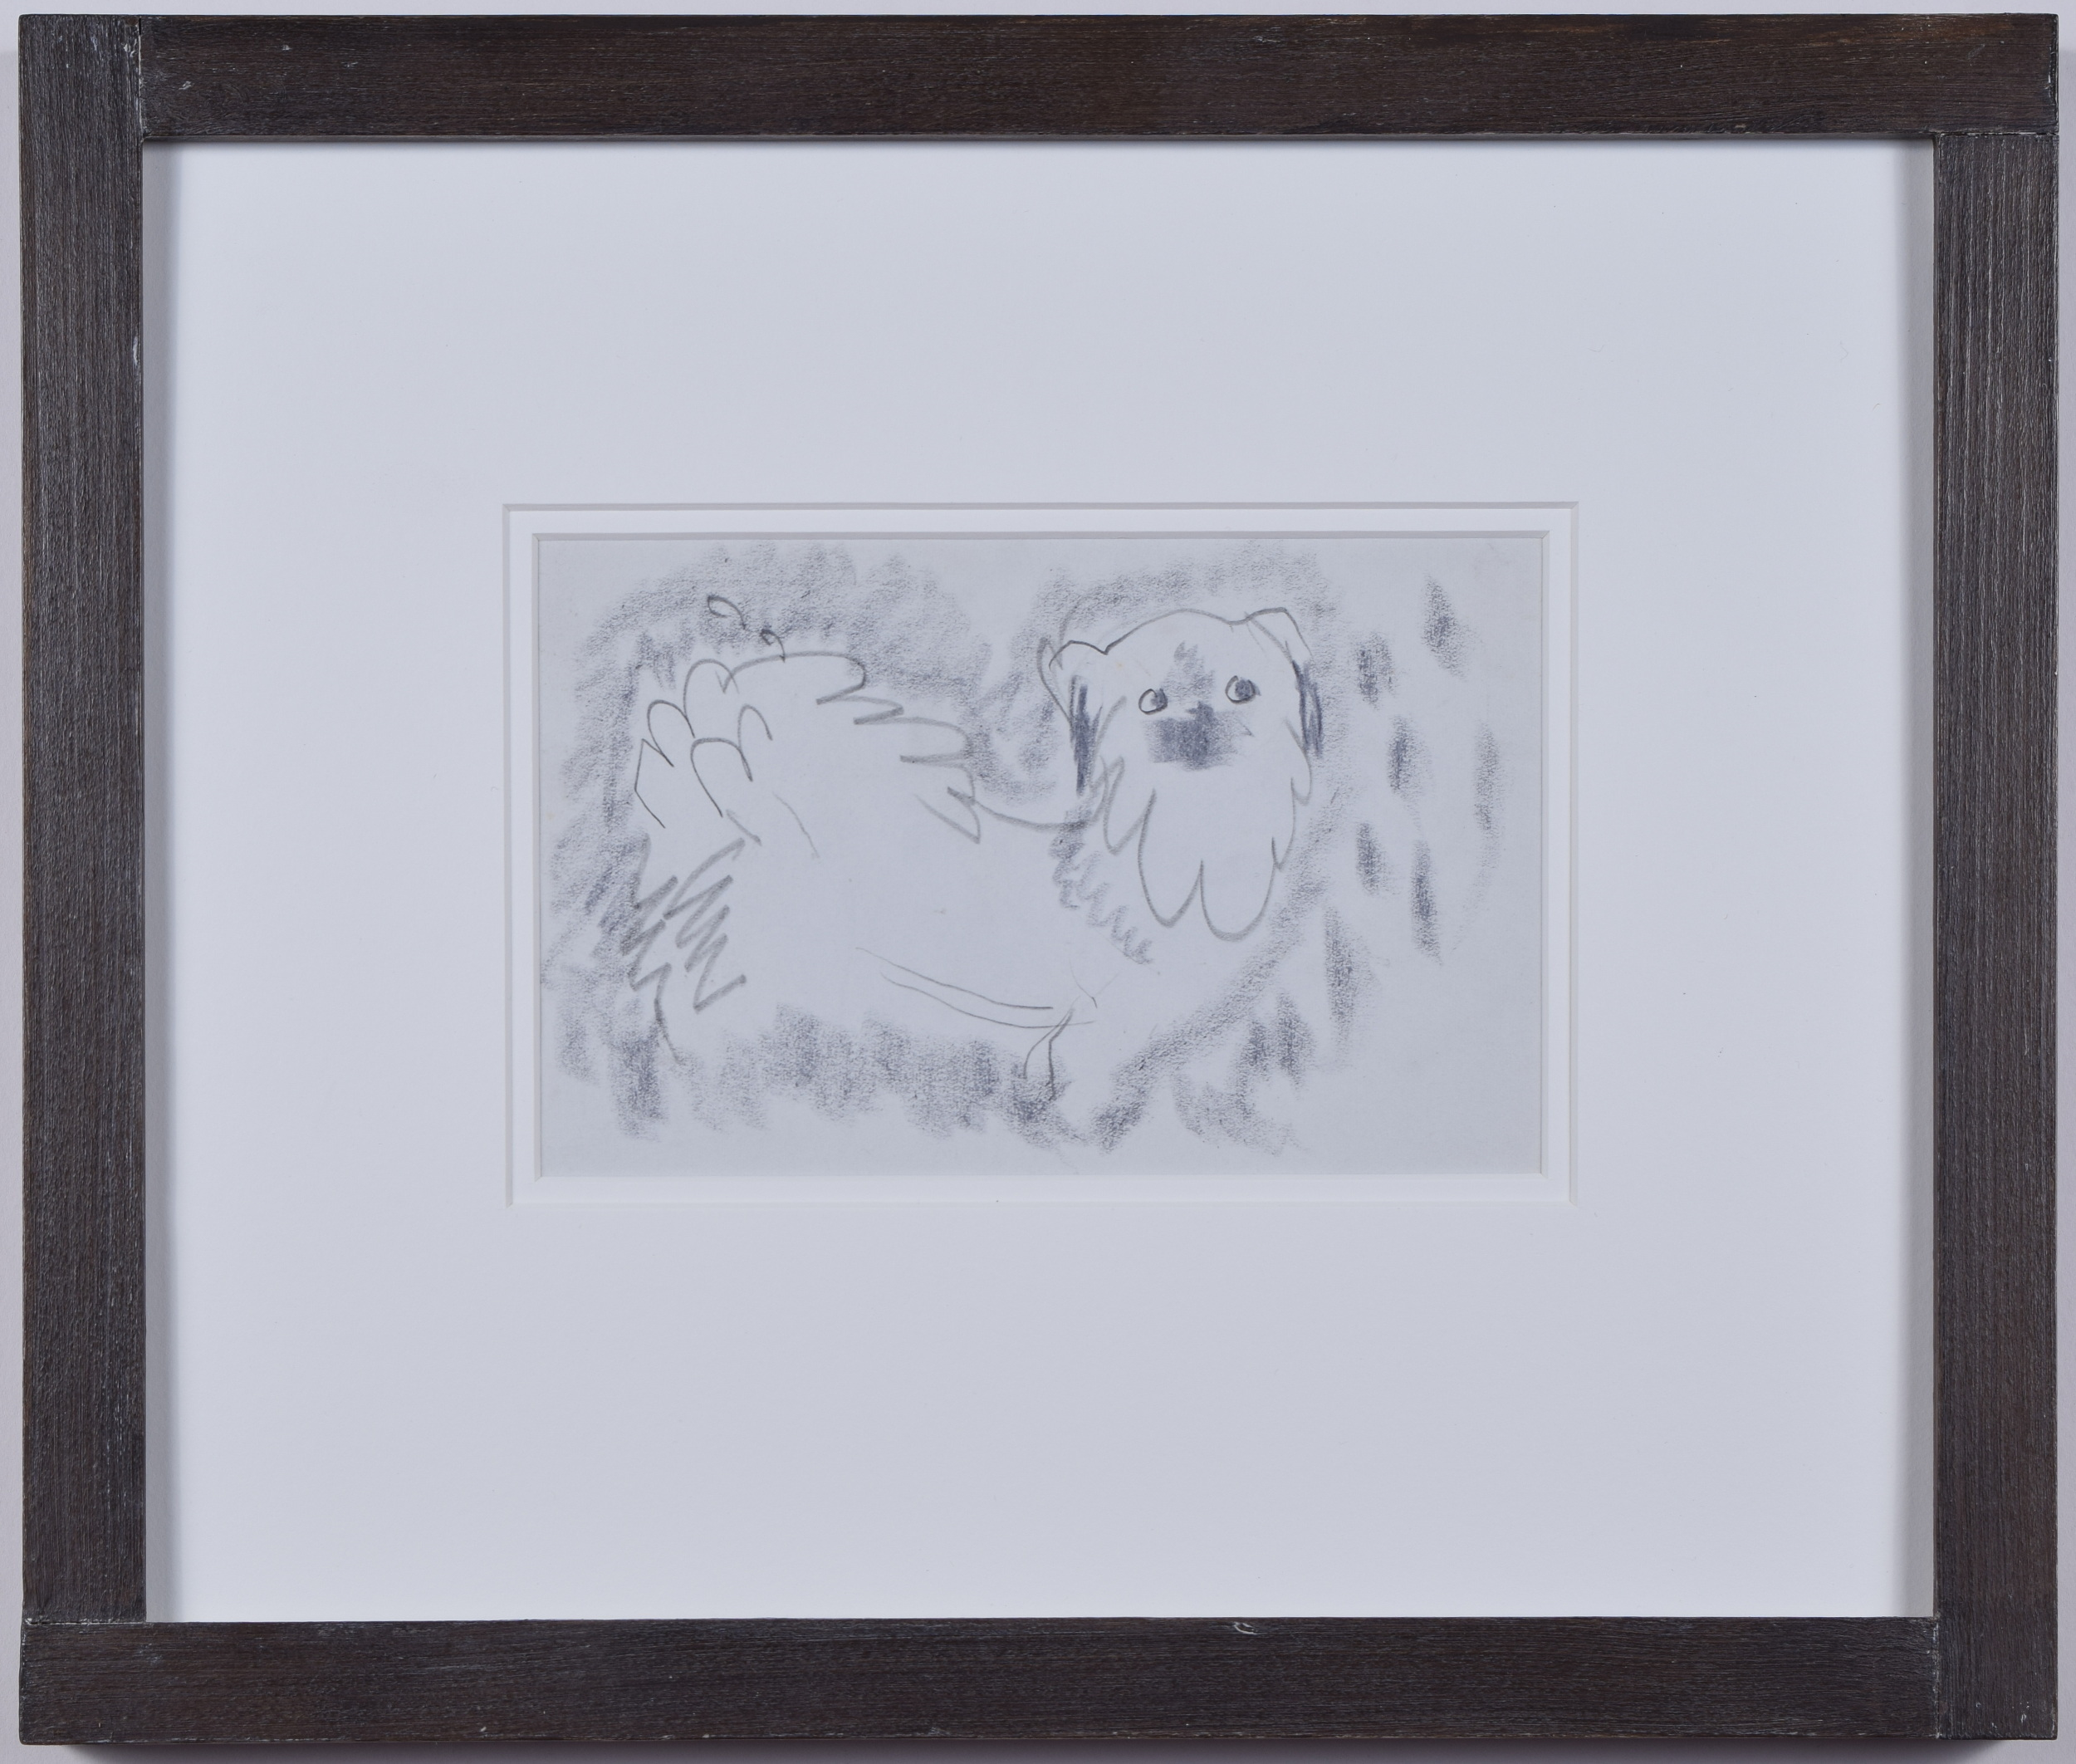 Clifford Ellis William Pug Dog II pencil sketch Mid Century Modern British Art